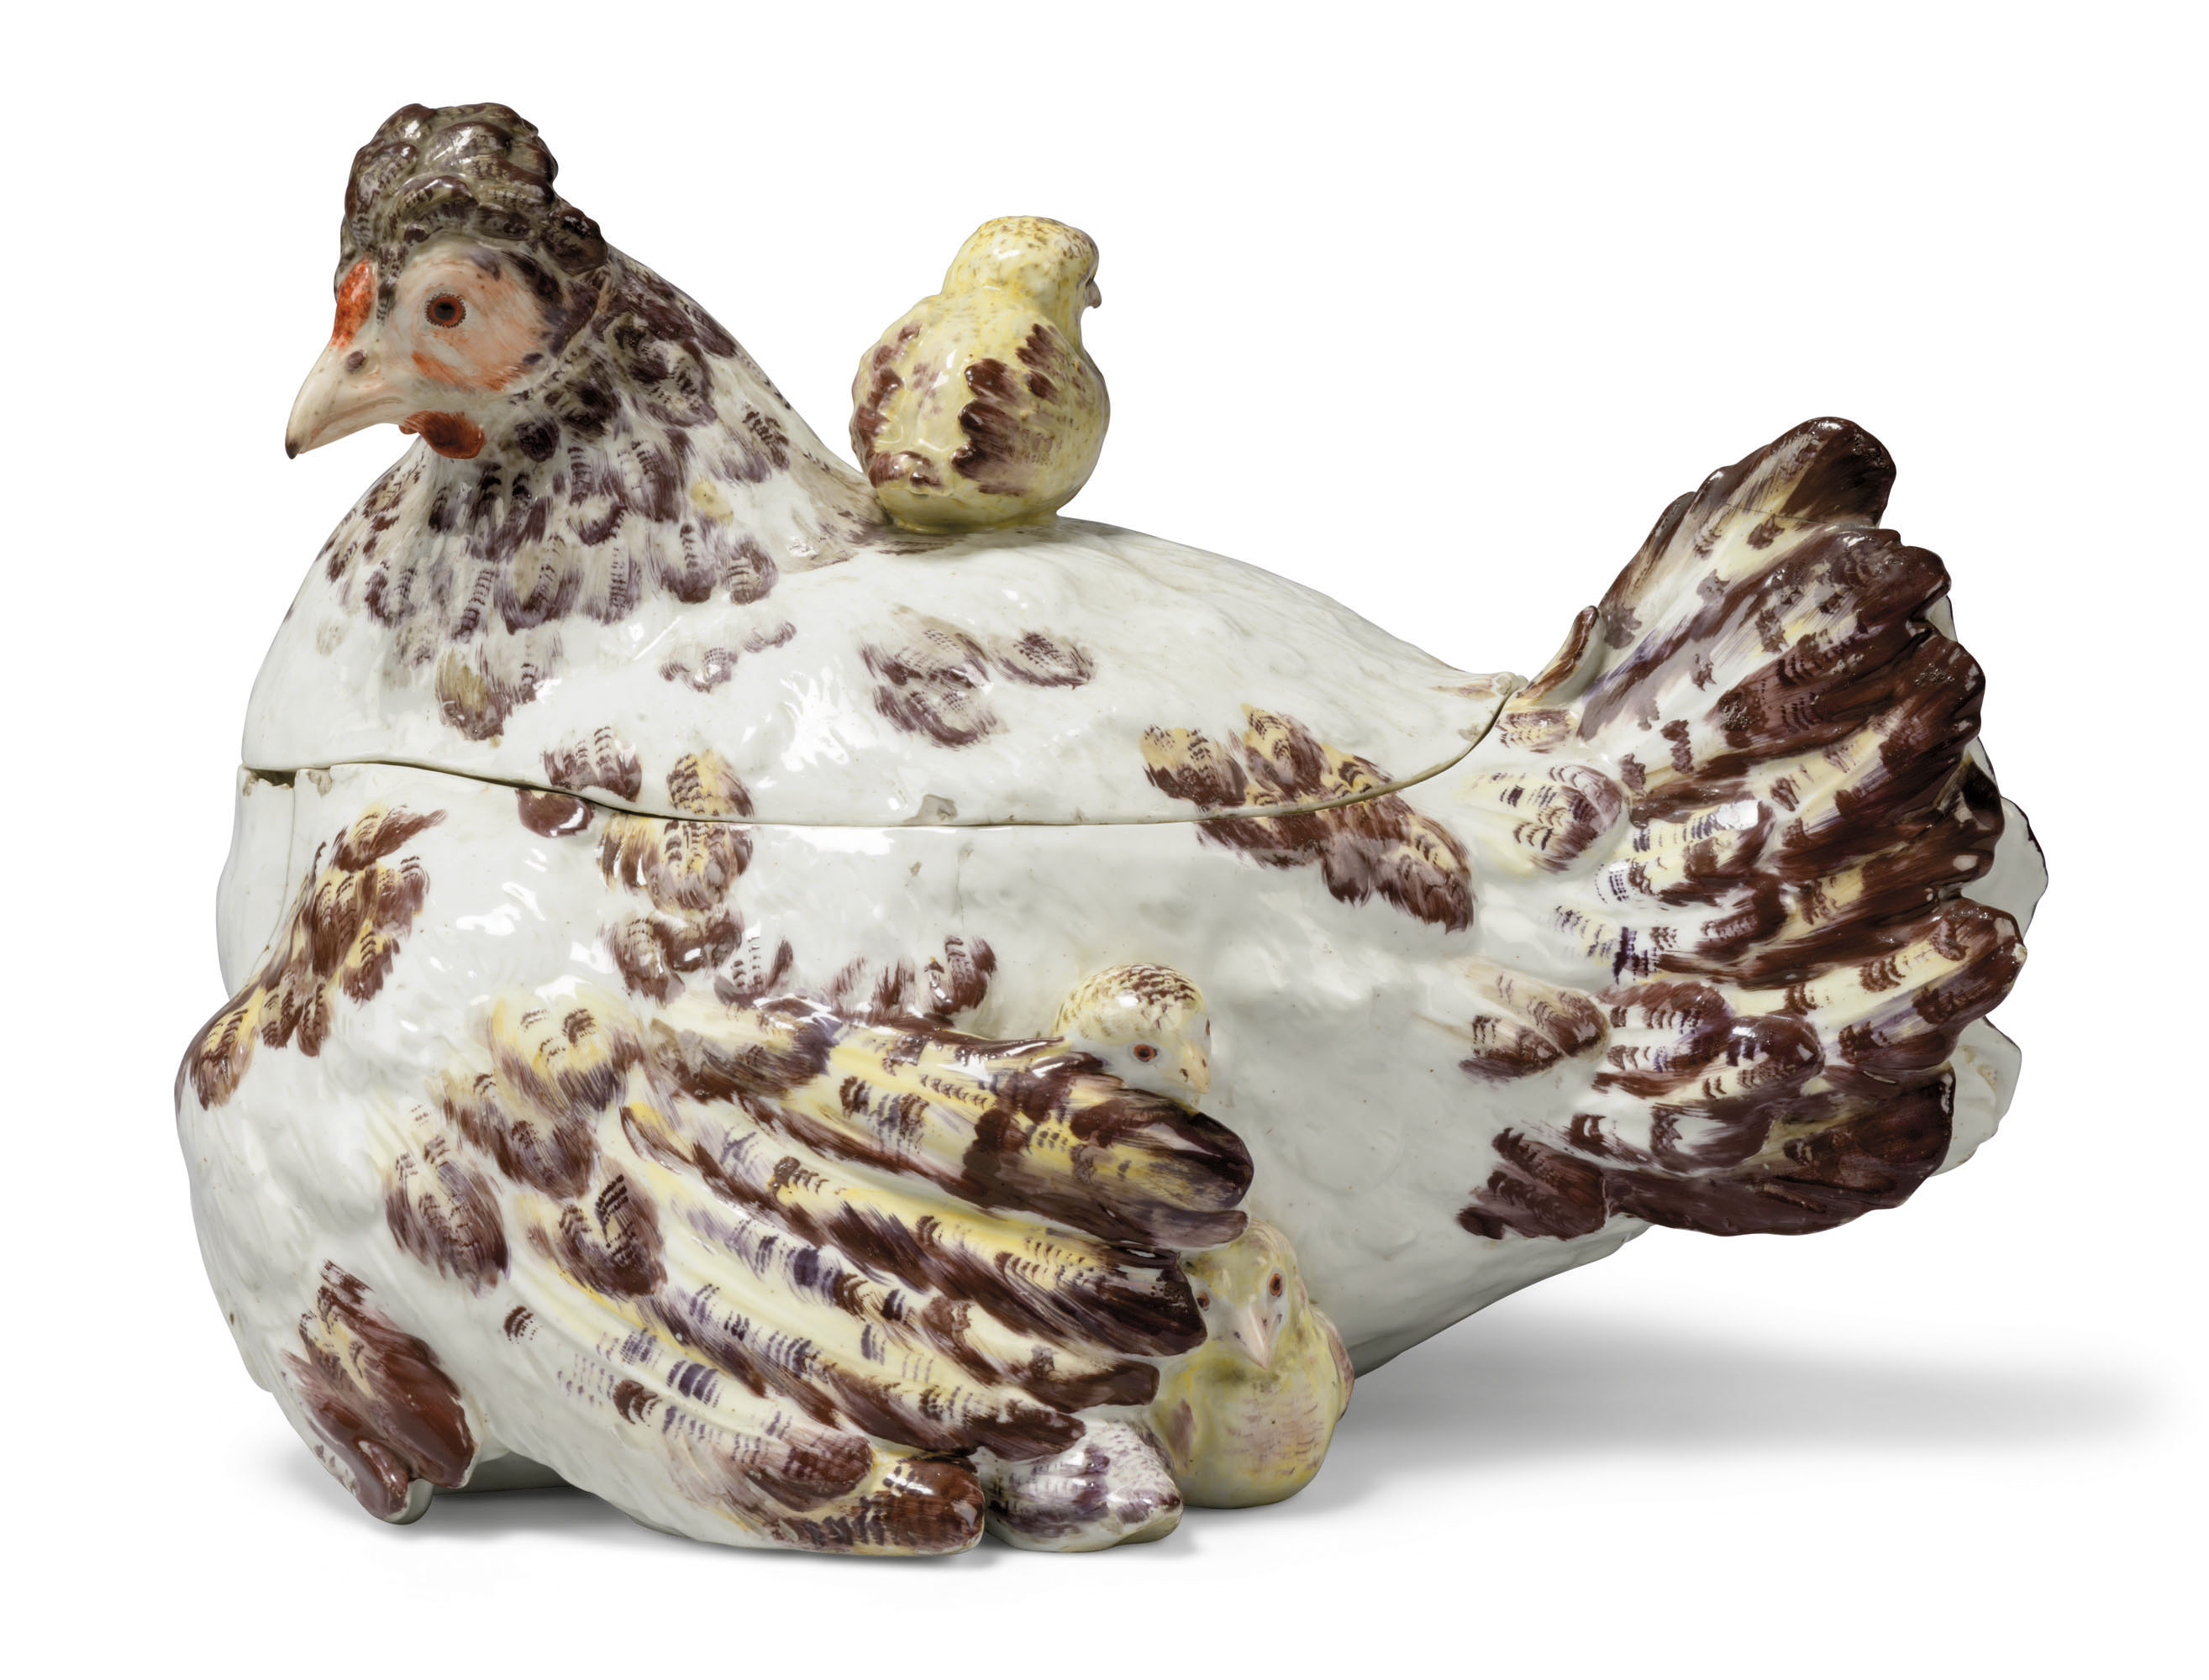 A Chelsea porcelain 'hen and chicks' tureen and cover, circa 1755. 14¼  in (36.2  cm) wide; 10  in (25.4  cm) high. Estimate £40,000-80,000. Offered inThe Collector Liveon 19 May 2021 at Christie's in London